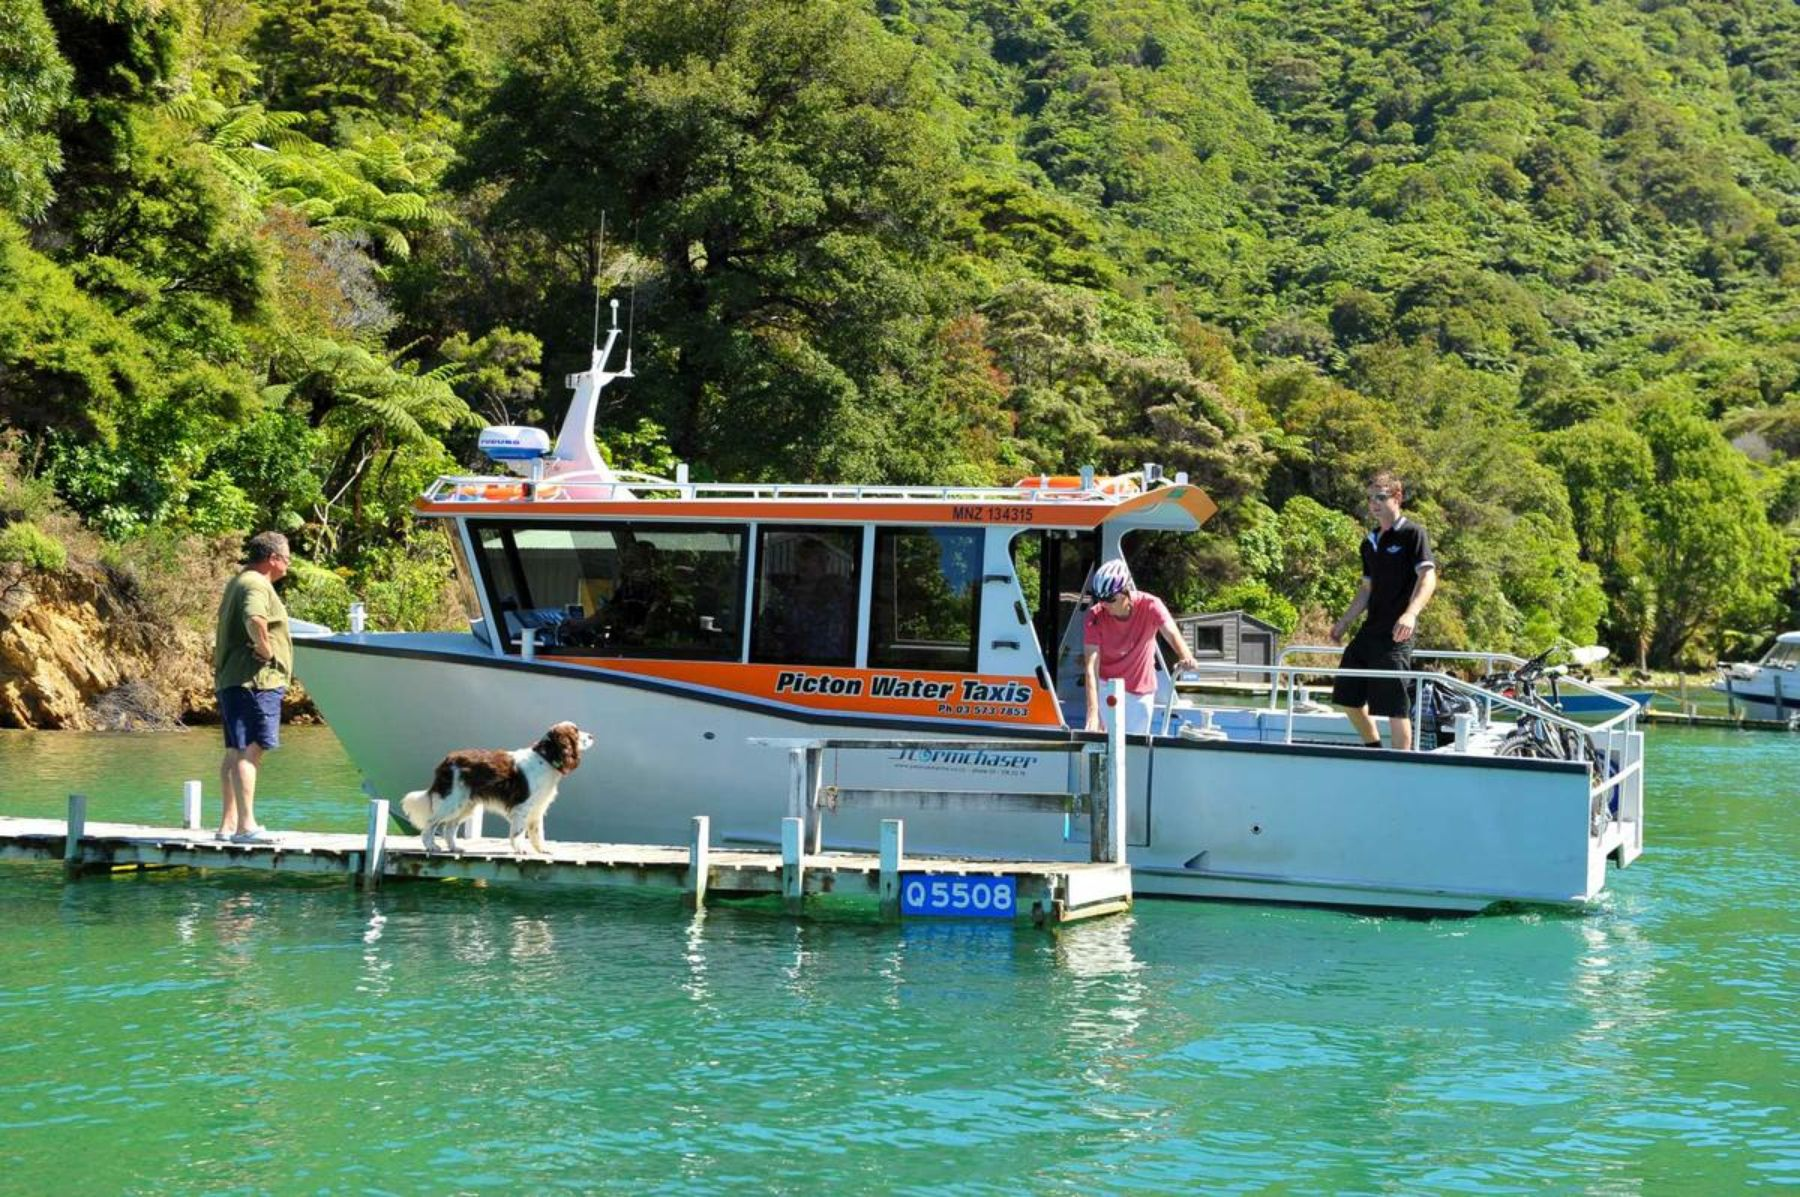 picton personals See the best tours for singles in new zealand  new zealand tours for solo / single travellers  , picton, kaikoura and 12 other destinations in new zealand .